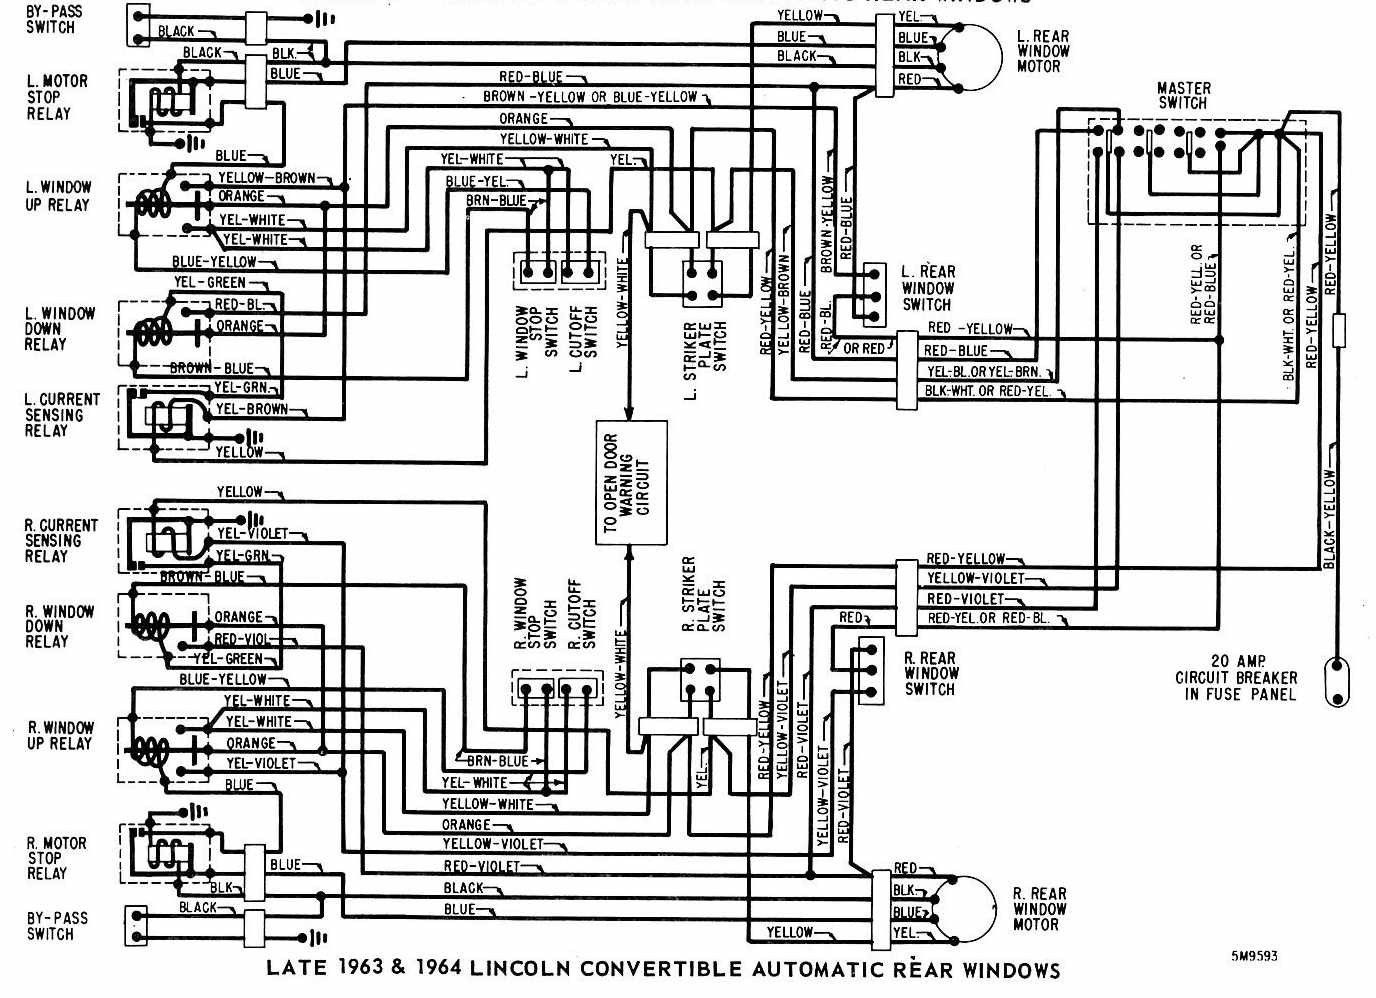 24 Good Sample Of Automotive Wiring Diagrams Download